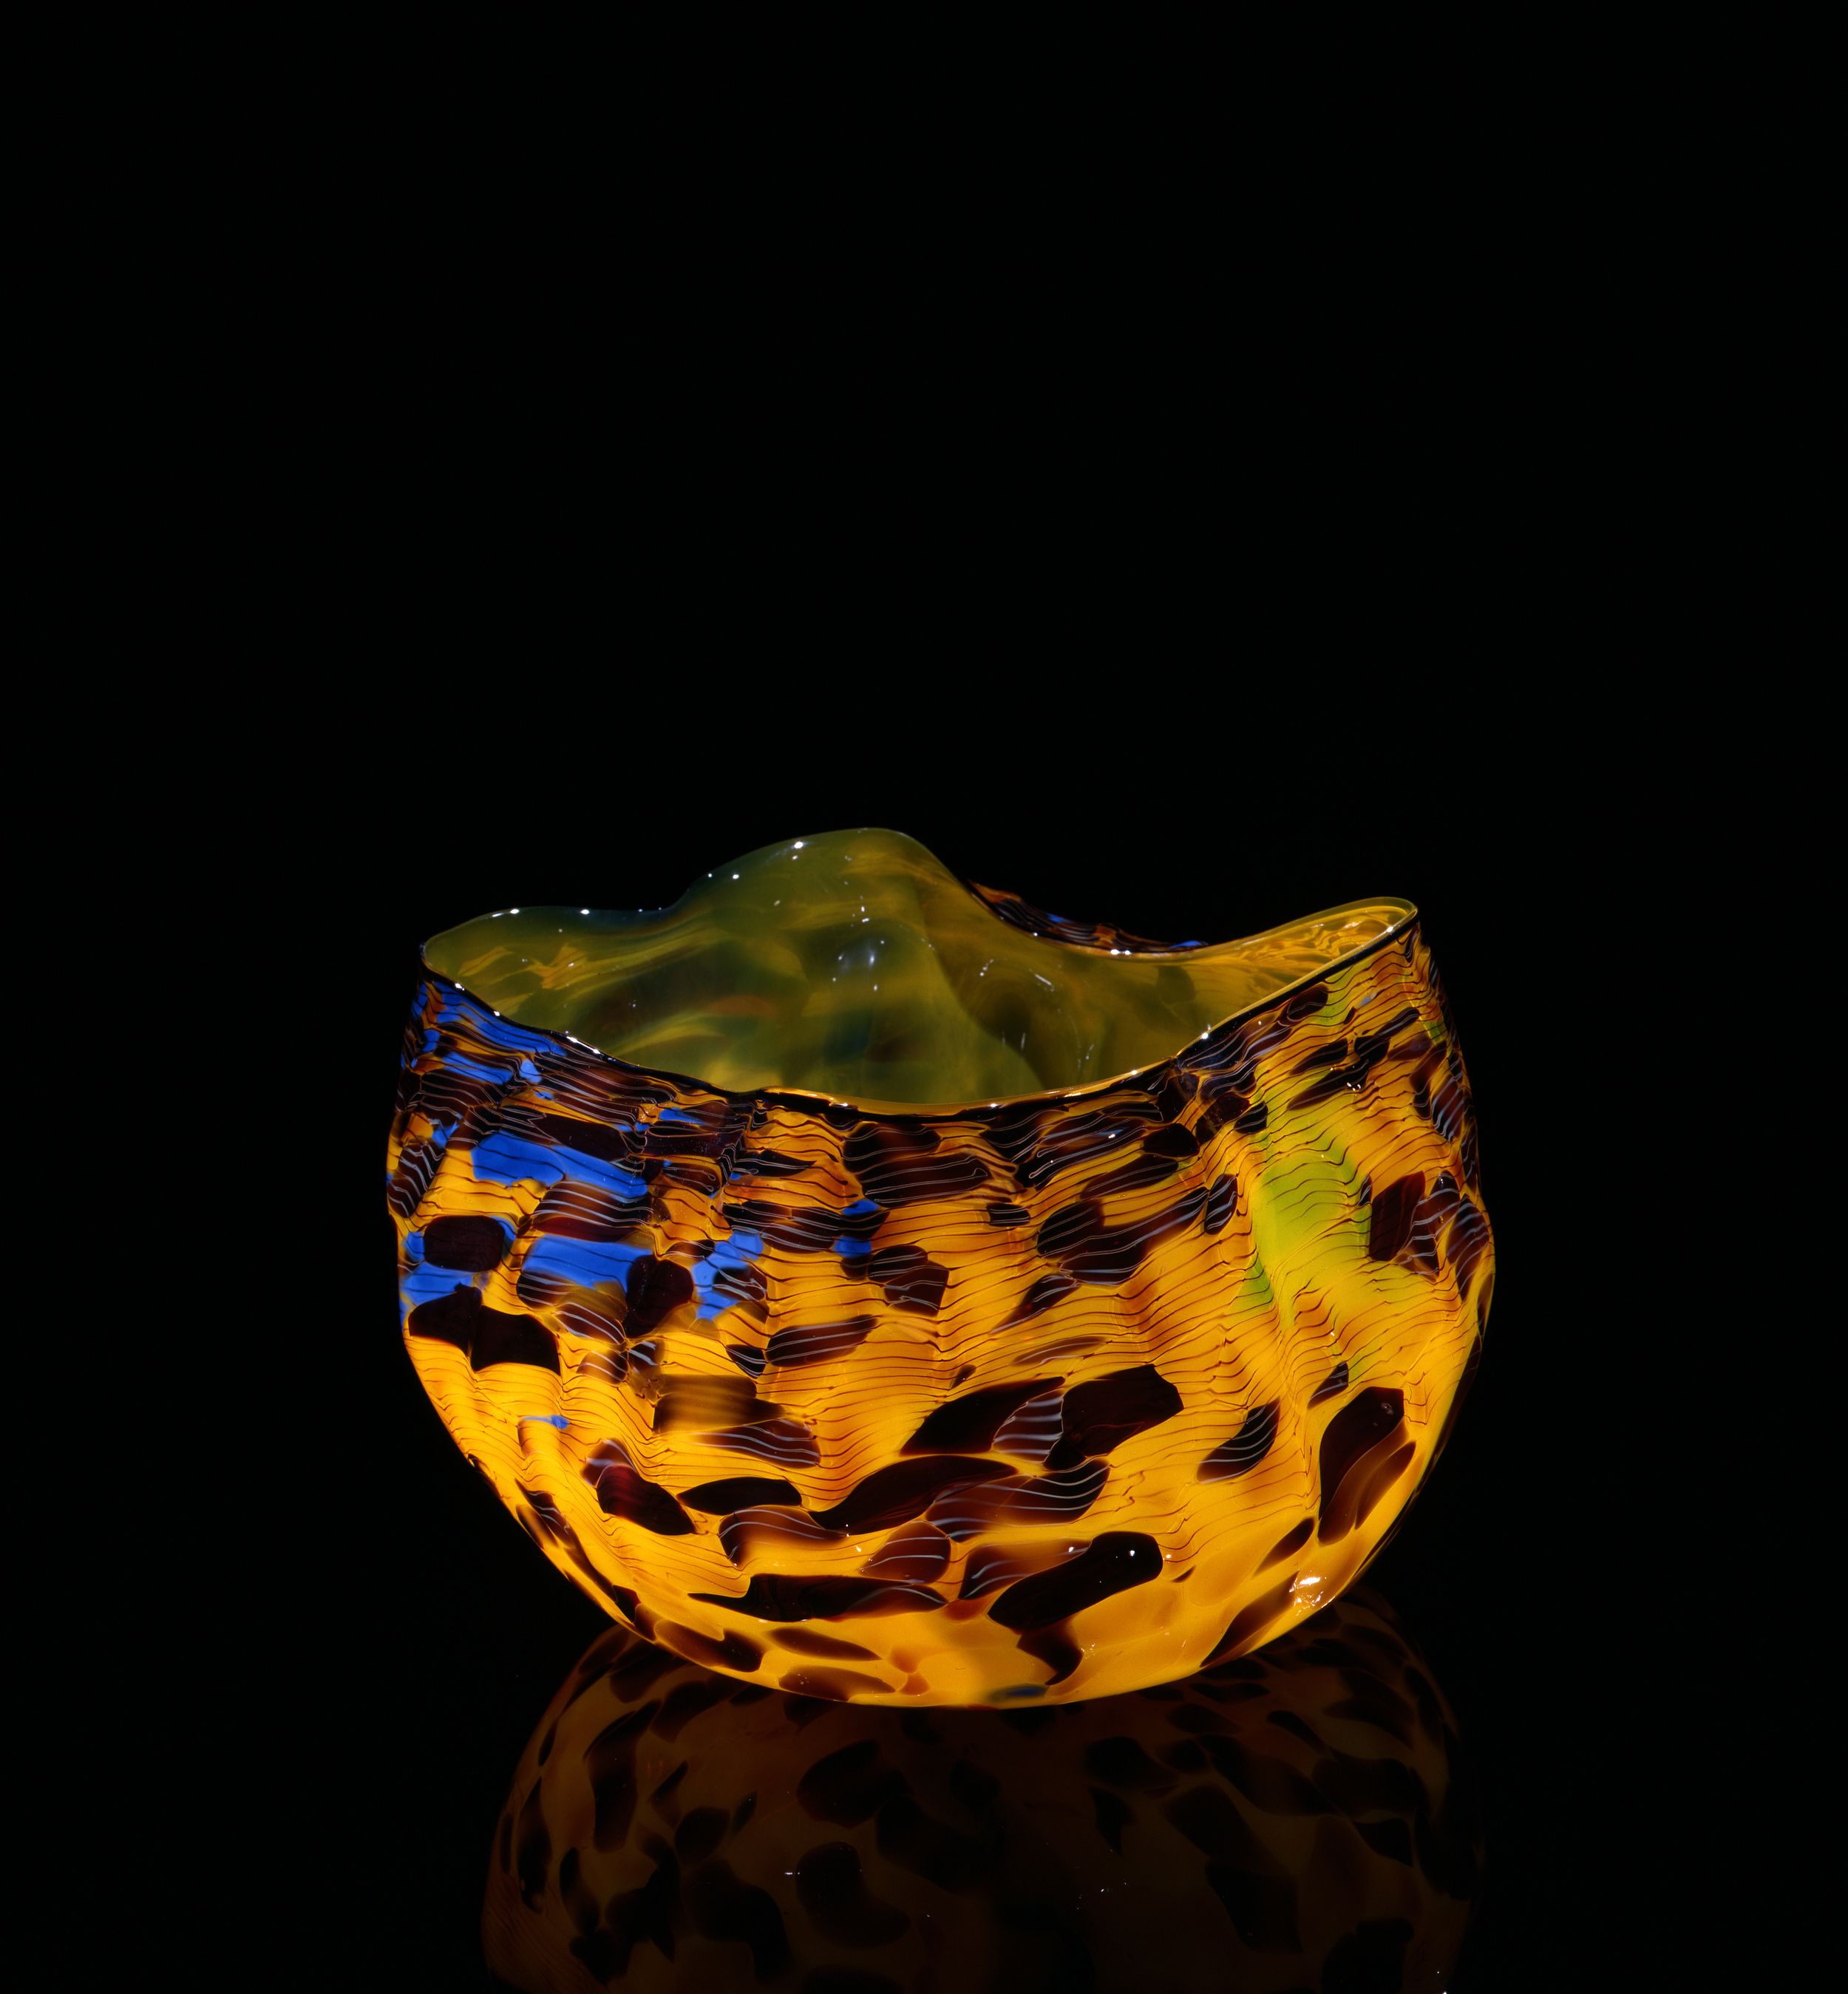 Dale Chihuly, Aureolin Macchia with Pech Black Lip Wrap (1982, glass, 8 x 12 x 11 inches), DC.63